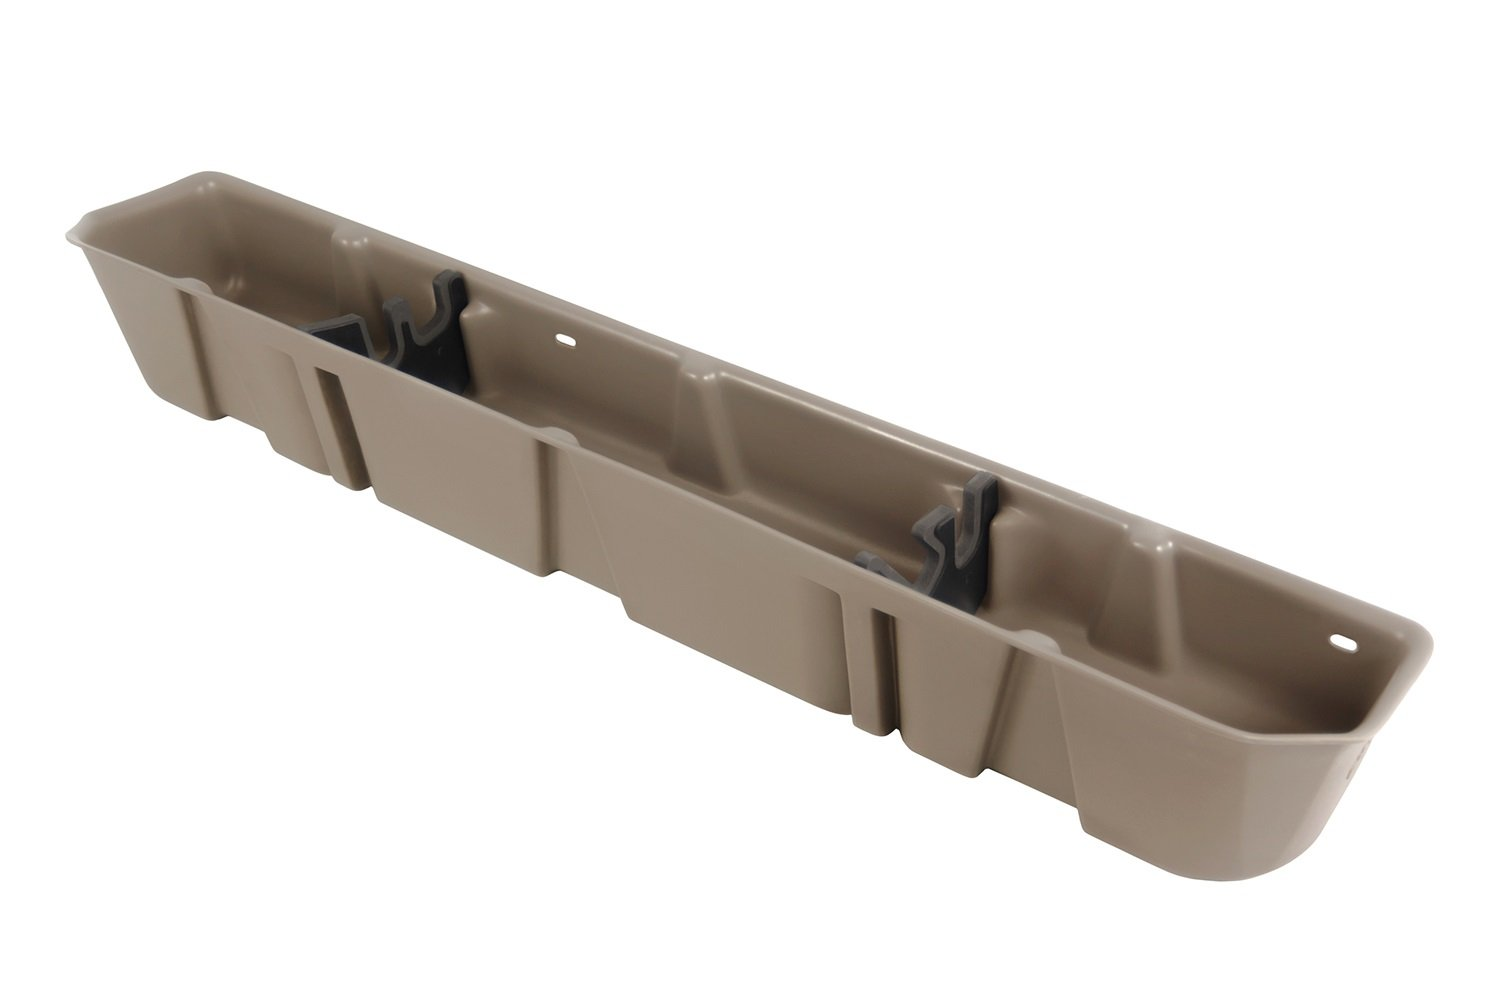 DU-HA Under Seat Storage Fits 15-17 Ford F-150 Supercab, Tan, Part #20108